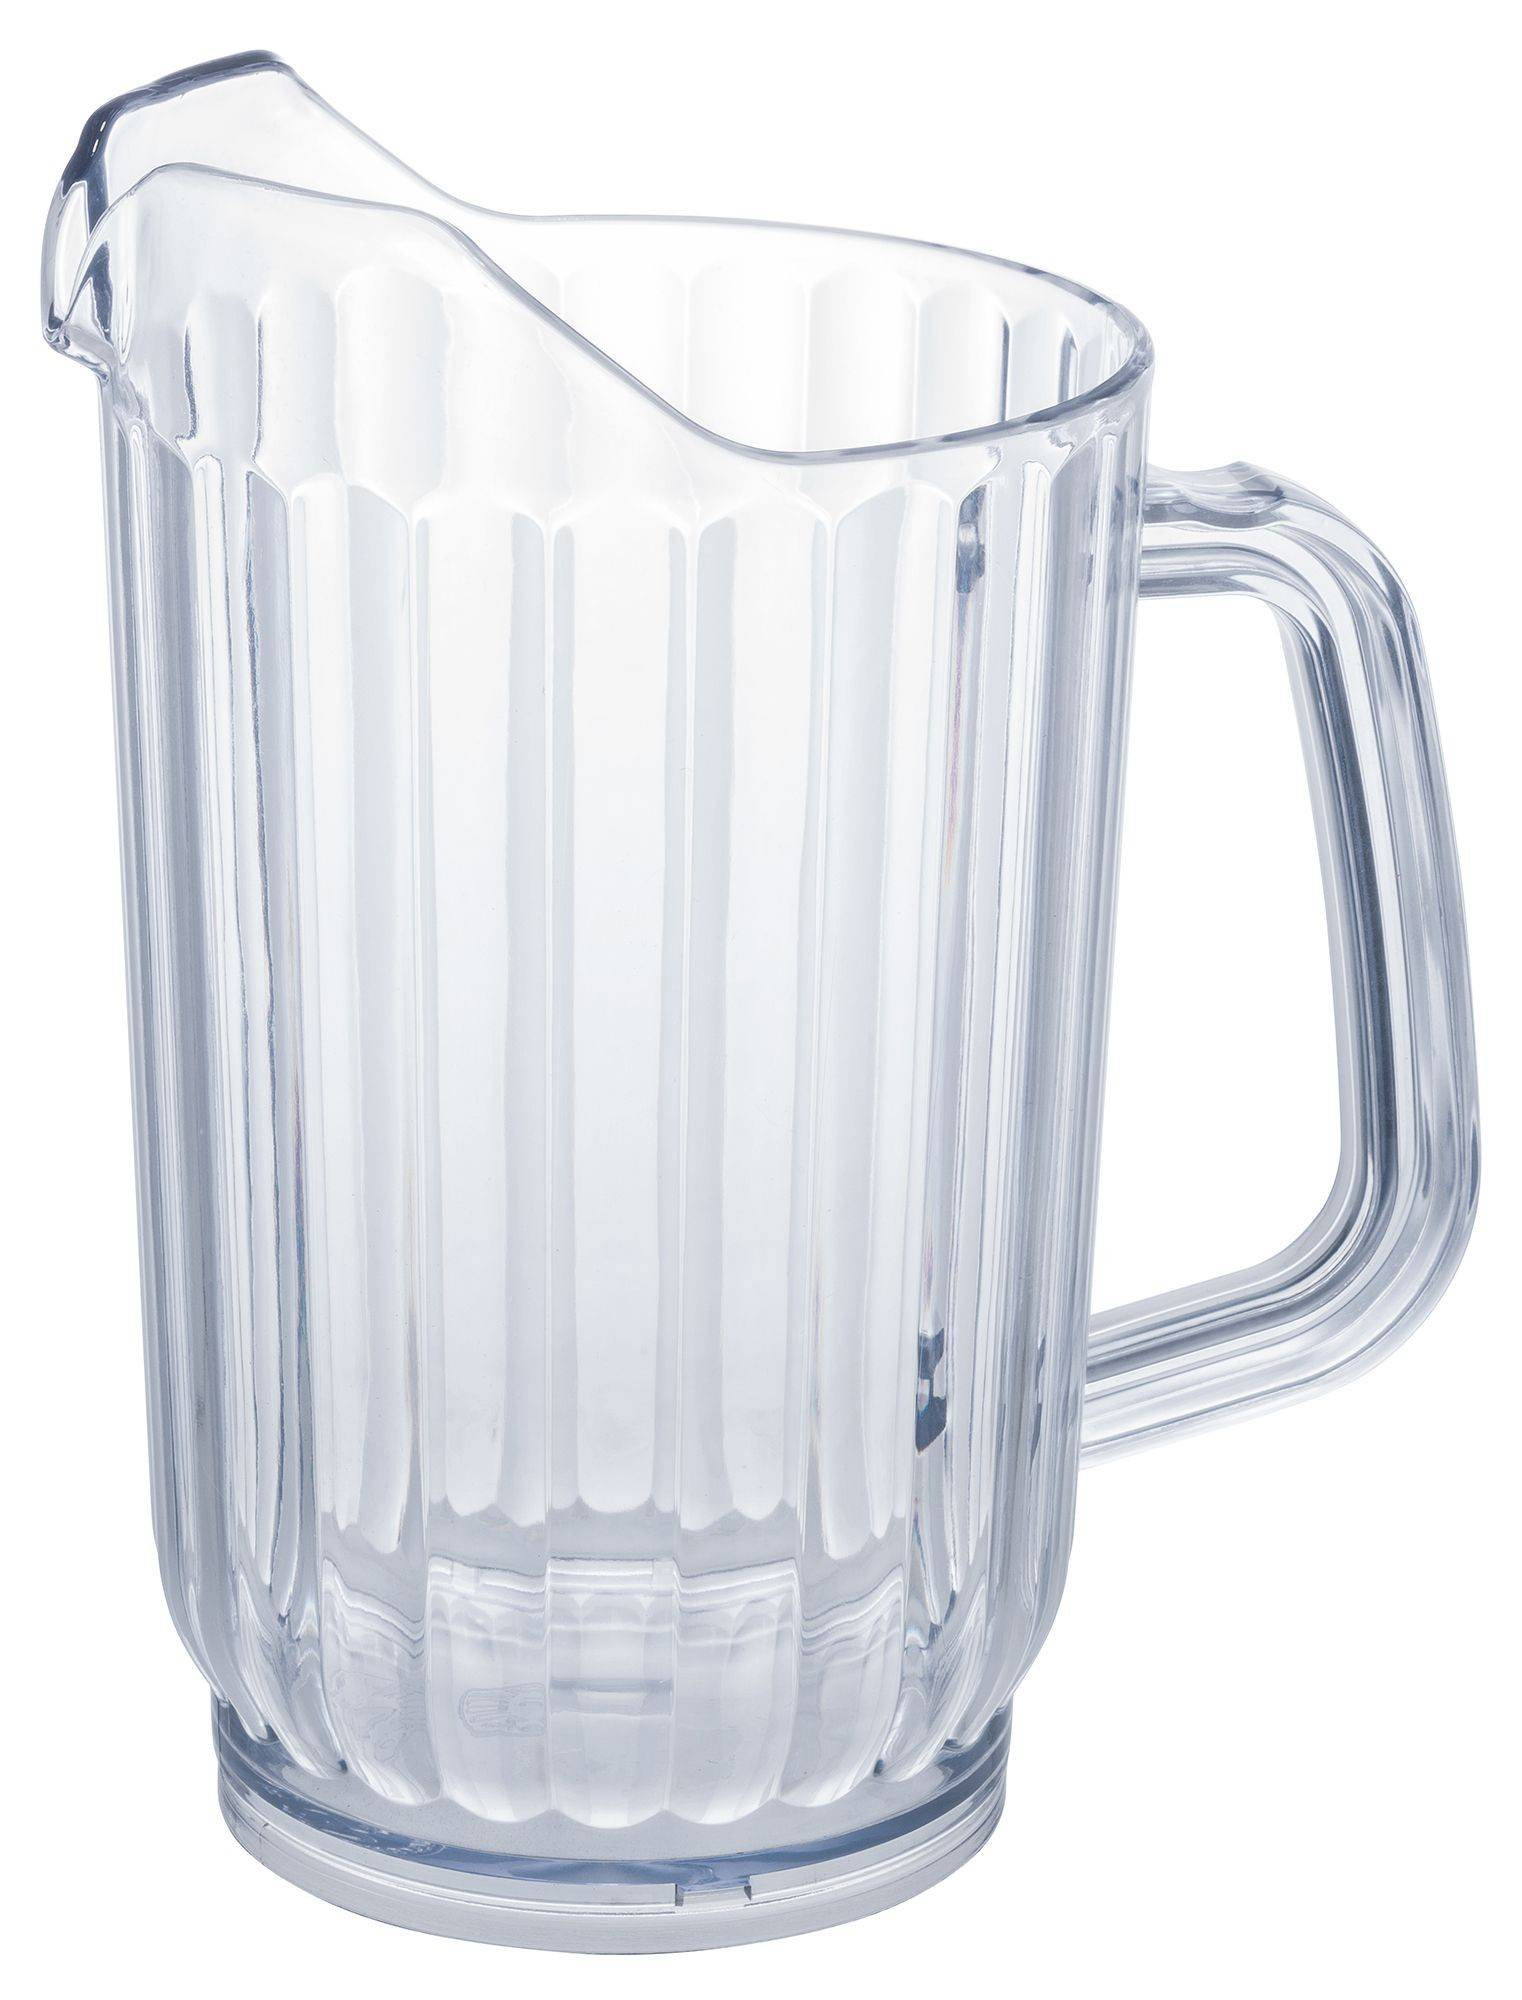 32Oz Plastic Water Pitcher (4Pc/Pack)